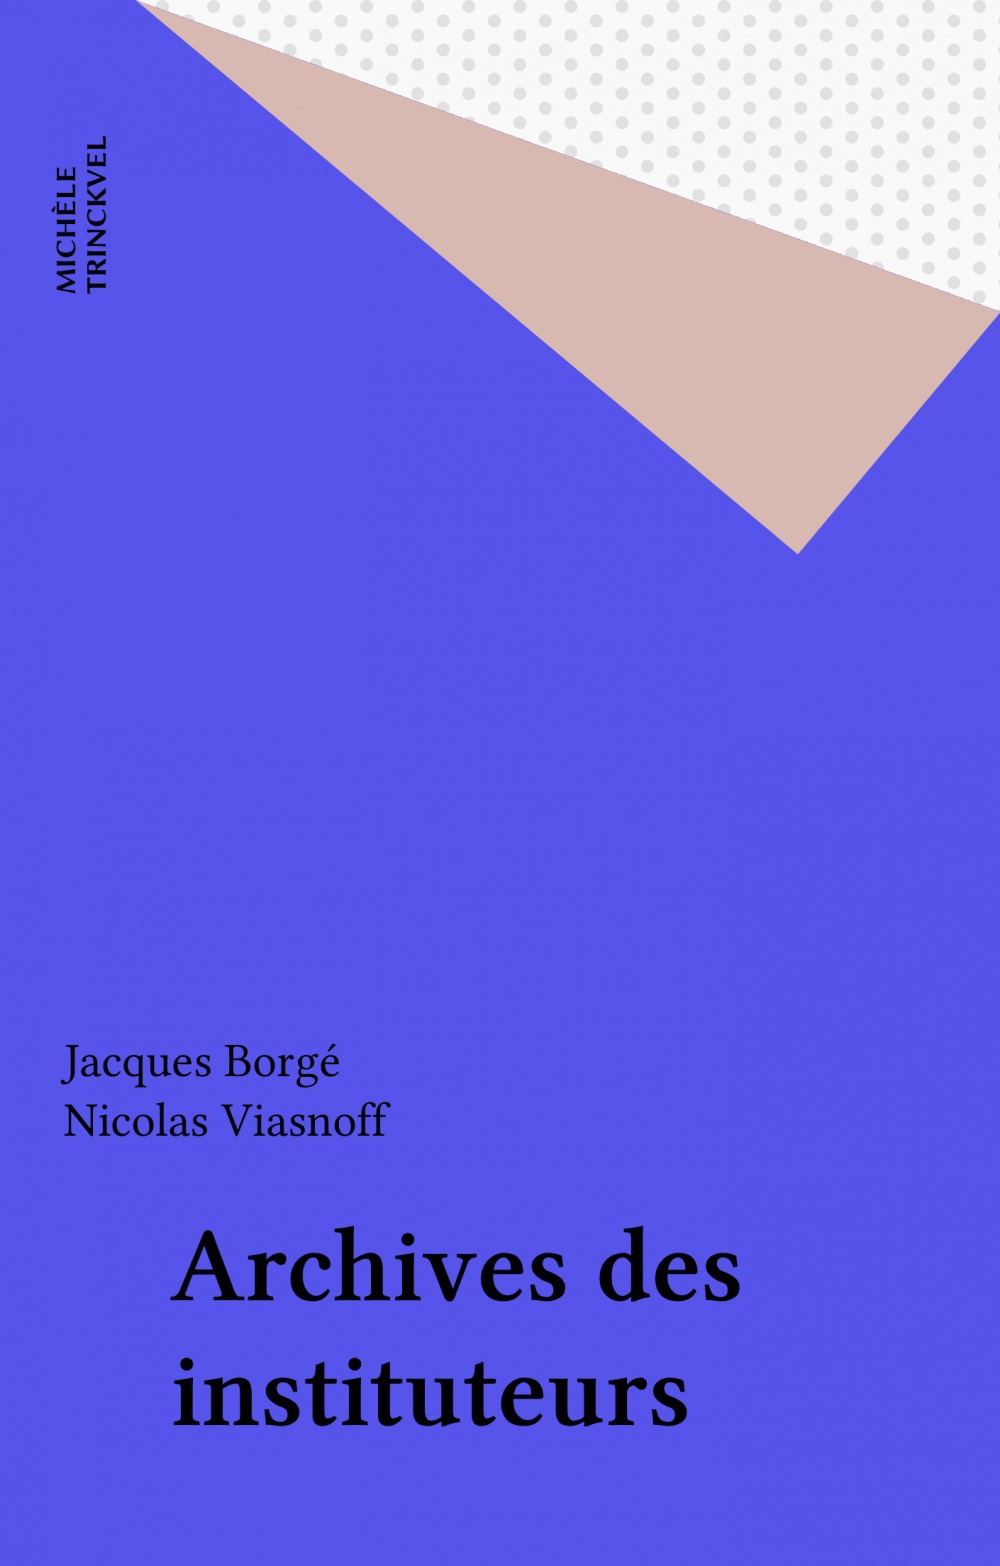 Archives des instituteurs